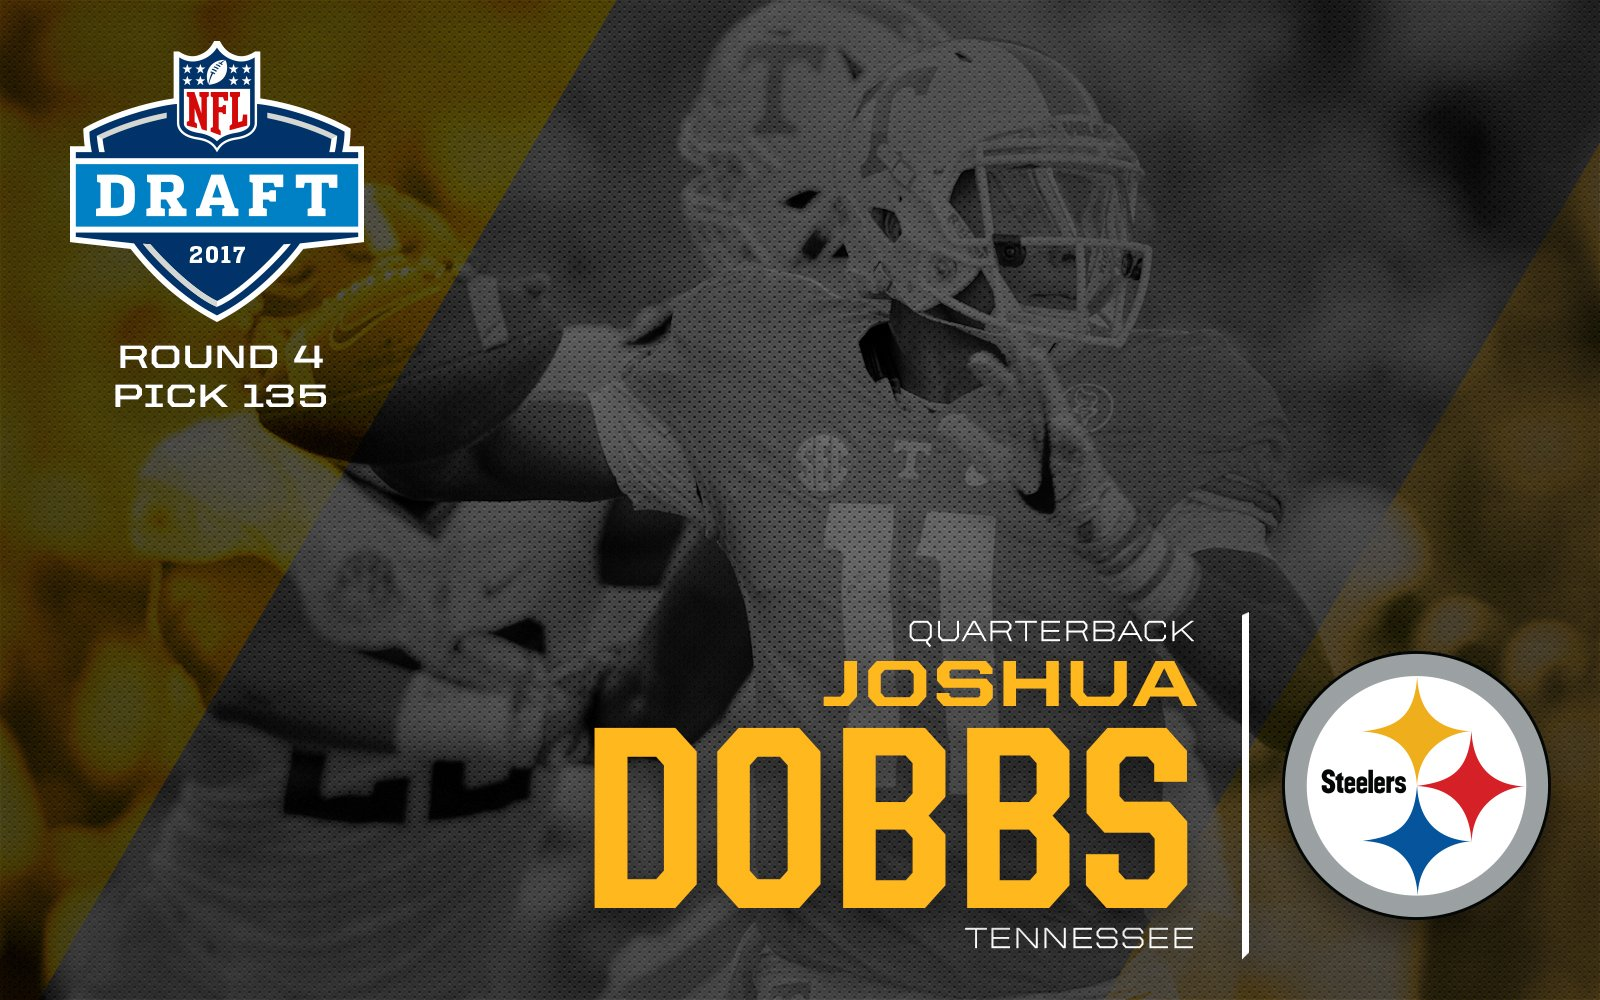 d59388acfa1 Josh Dobbs drafted by the Steelers in 4th Rd, #135 overall